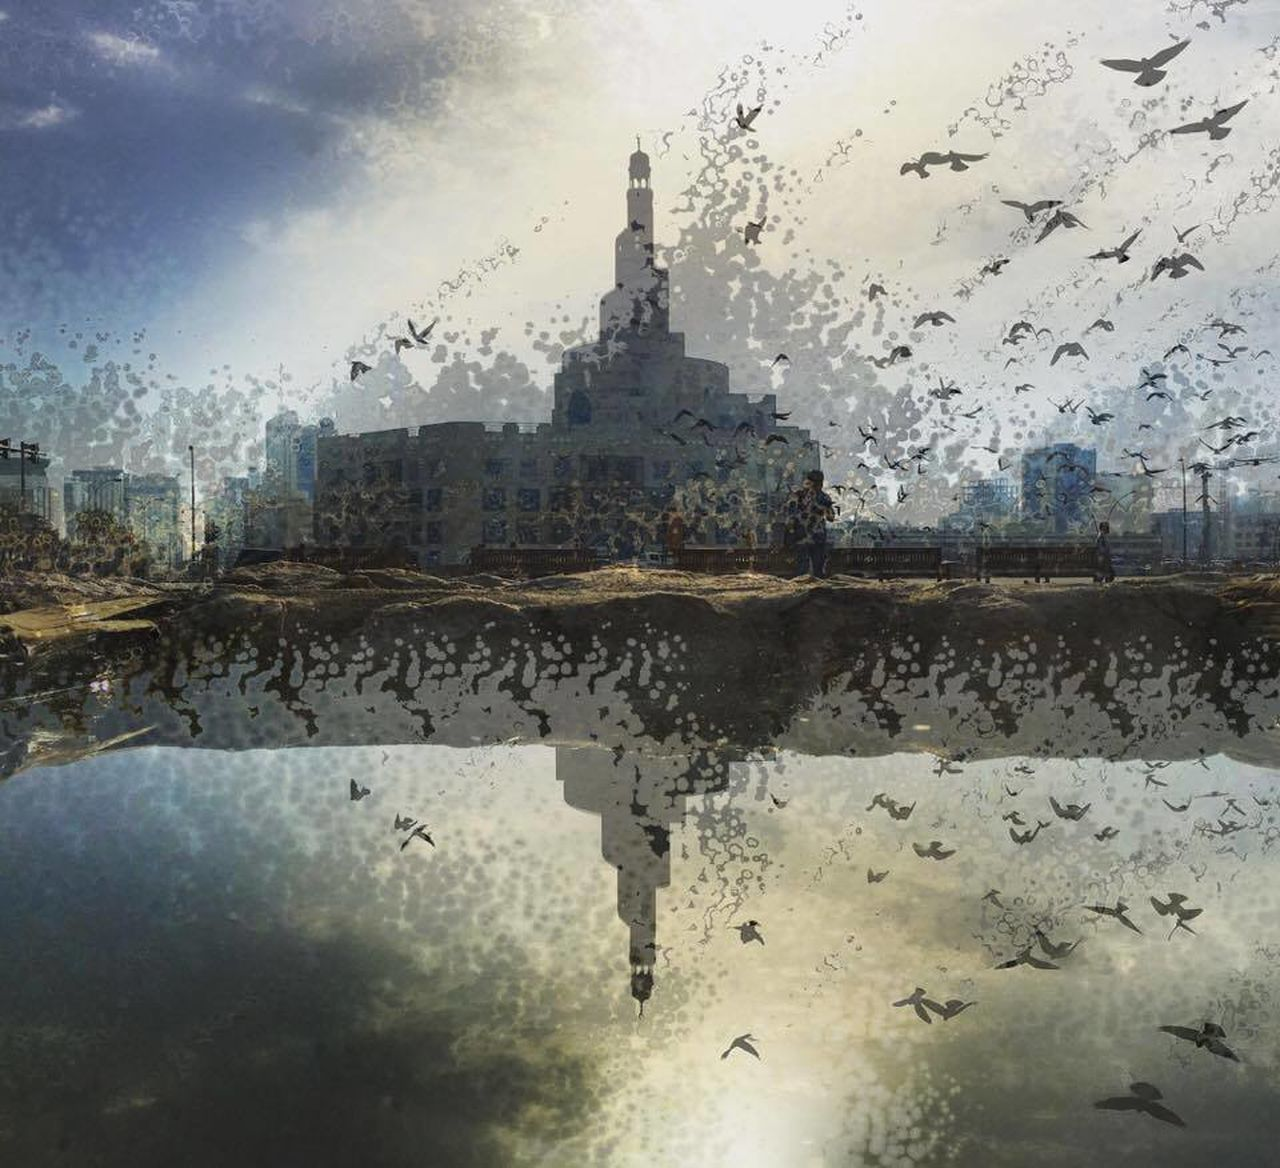 reflection, water, no people, wet, sky, outdoors, built structure, puddle, architecture, day, building exterior, nature, city